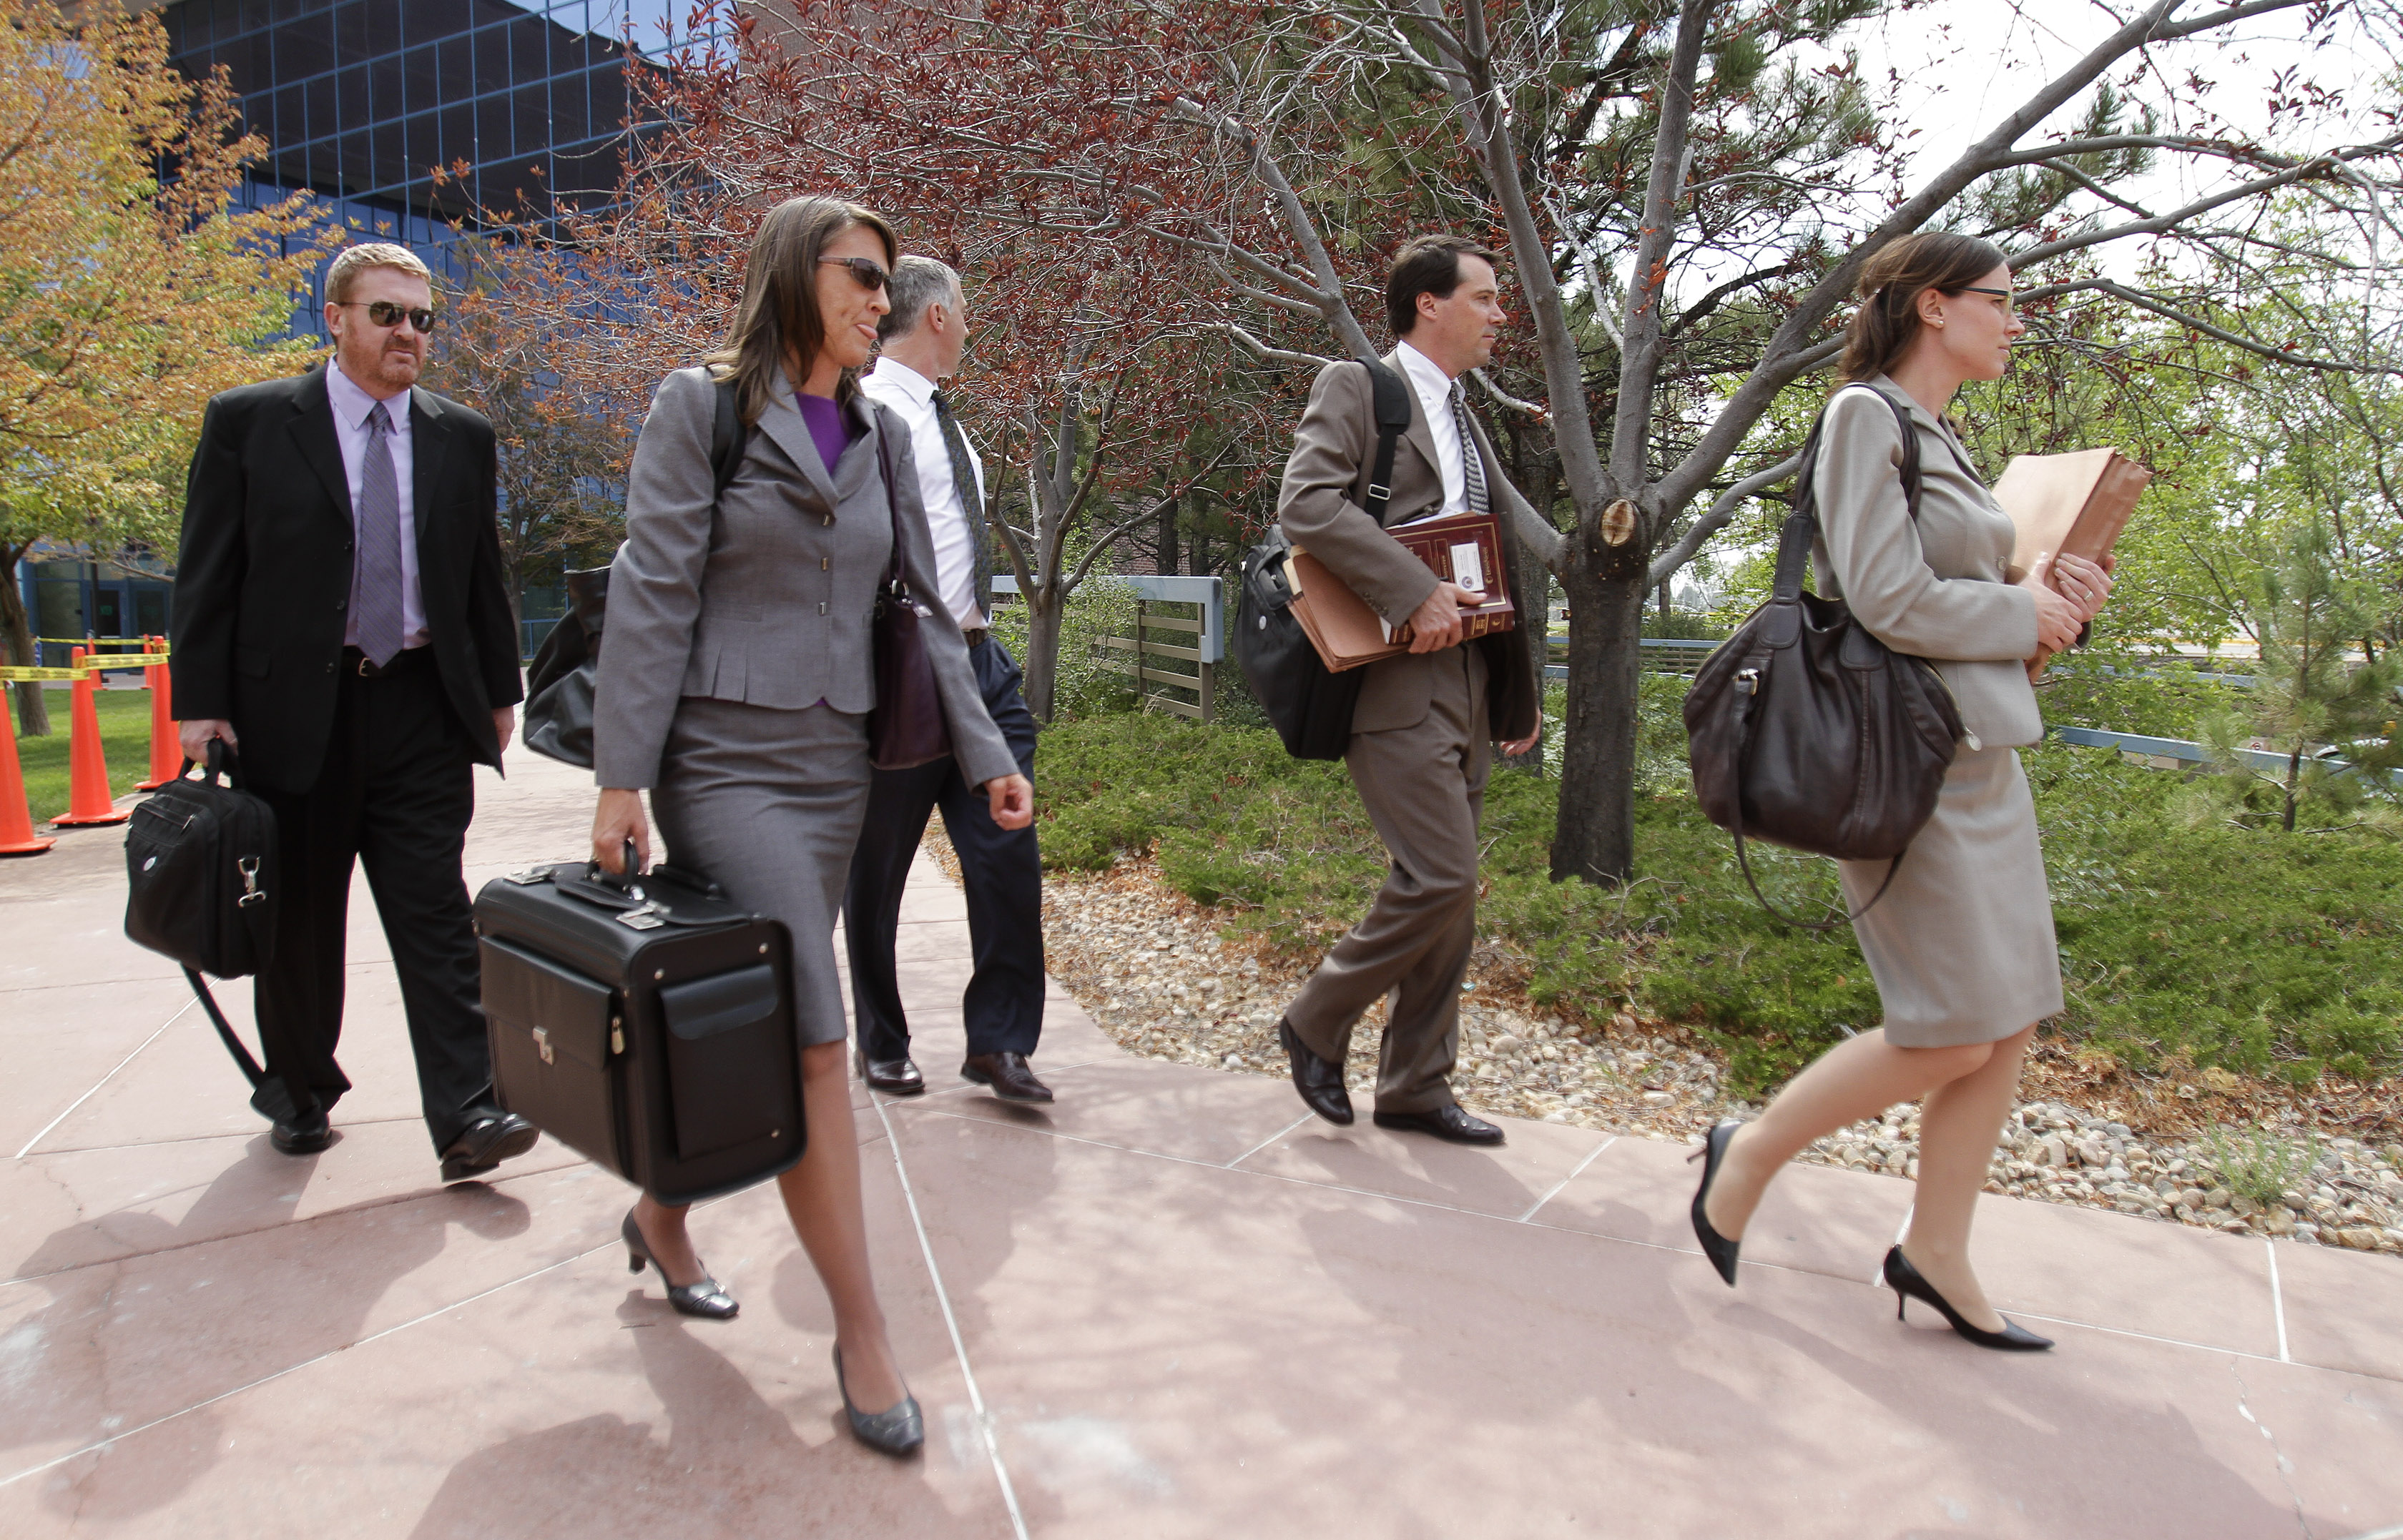 <p>Public defenders walk with the defense team as they leave the Arapahoe County courthouse after a motions hearing for Aurora shooting suspect James Holmes on Thursday Aug. 9, 2012.</p>